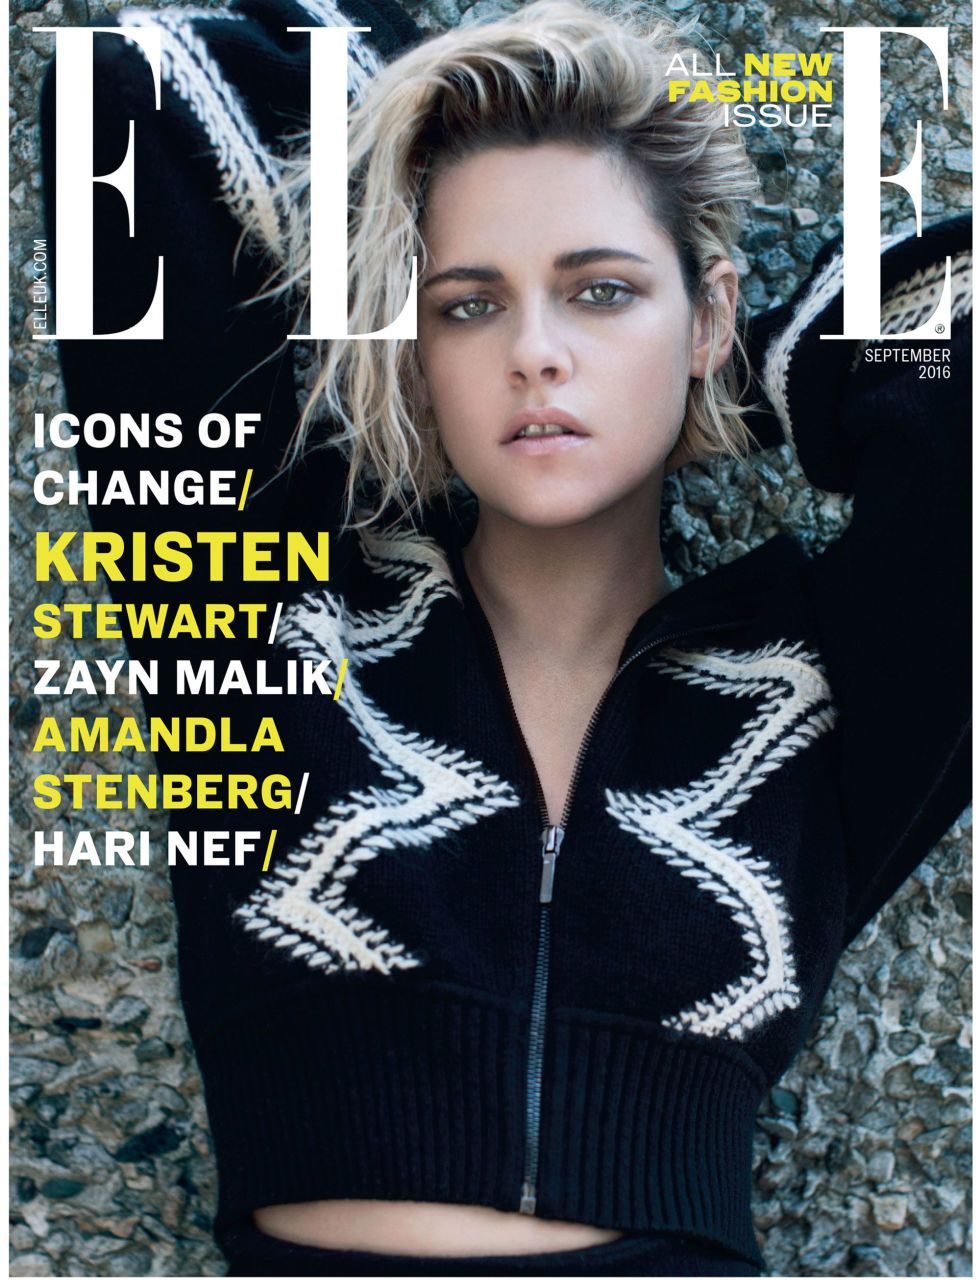 Fabuleux Icon Of Change! Kristen Stewart's ELLE UK September Cover ZH38